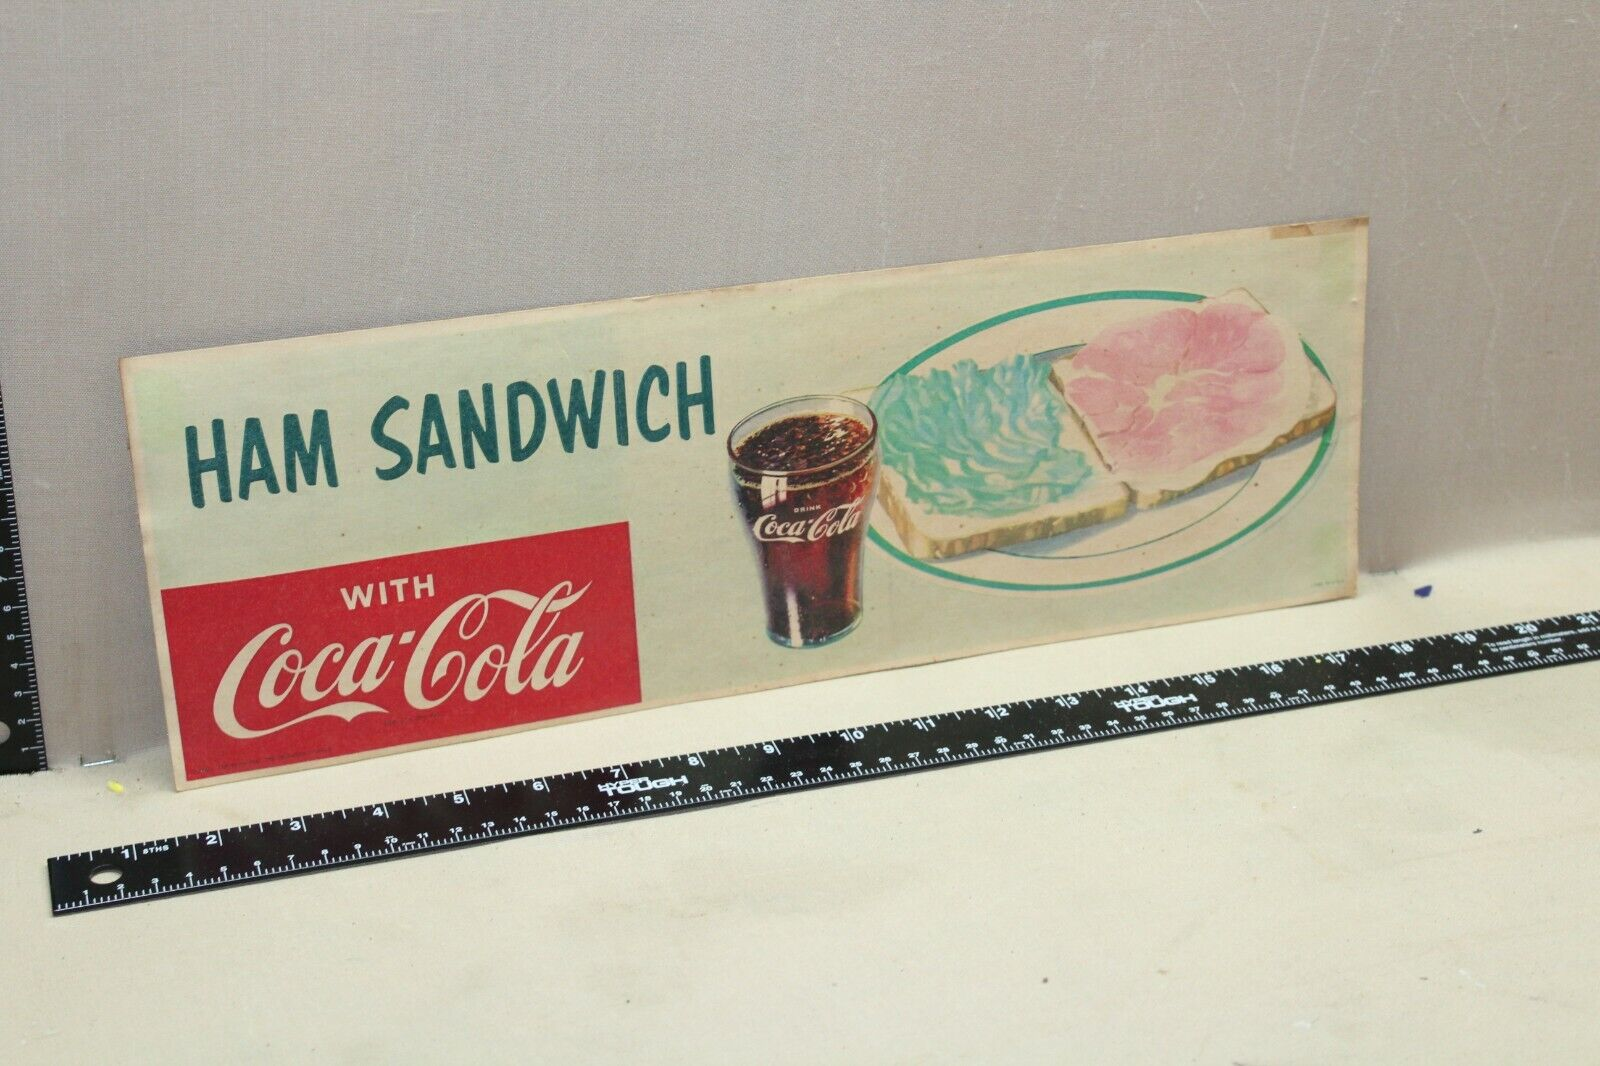 RARE 1957 COCA COLA HAM SANDWICH DINER DISPLAY SIGN DRIVE IN RESTAURANT GAS  - $0.99